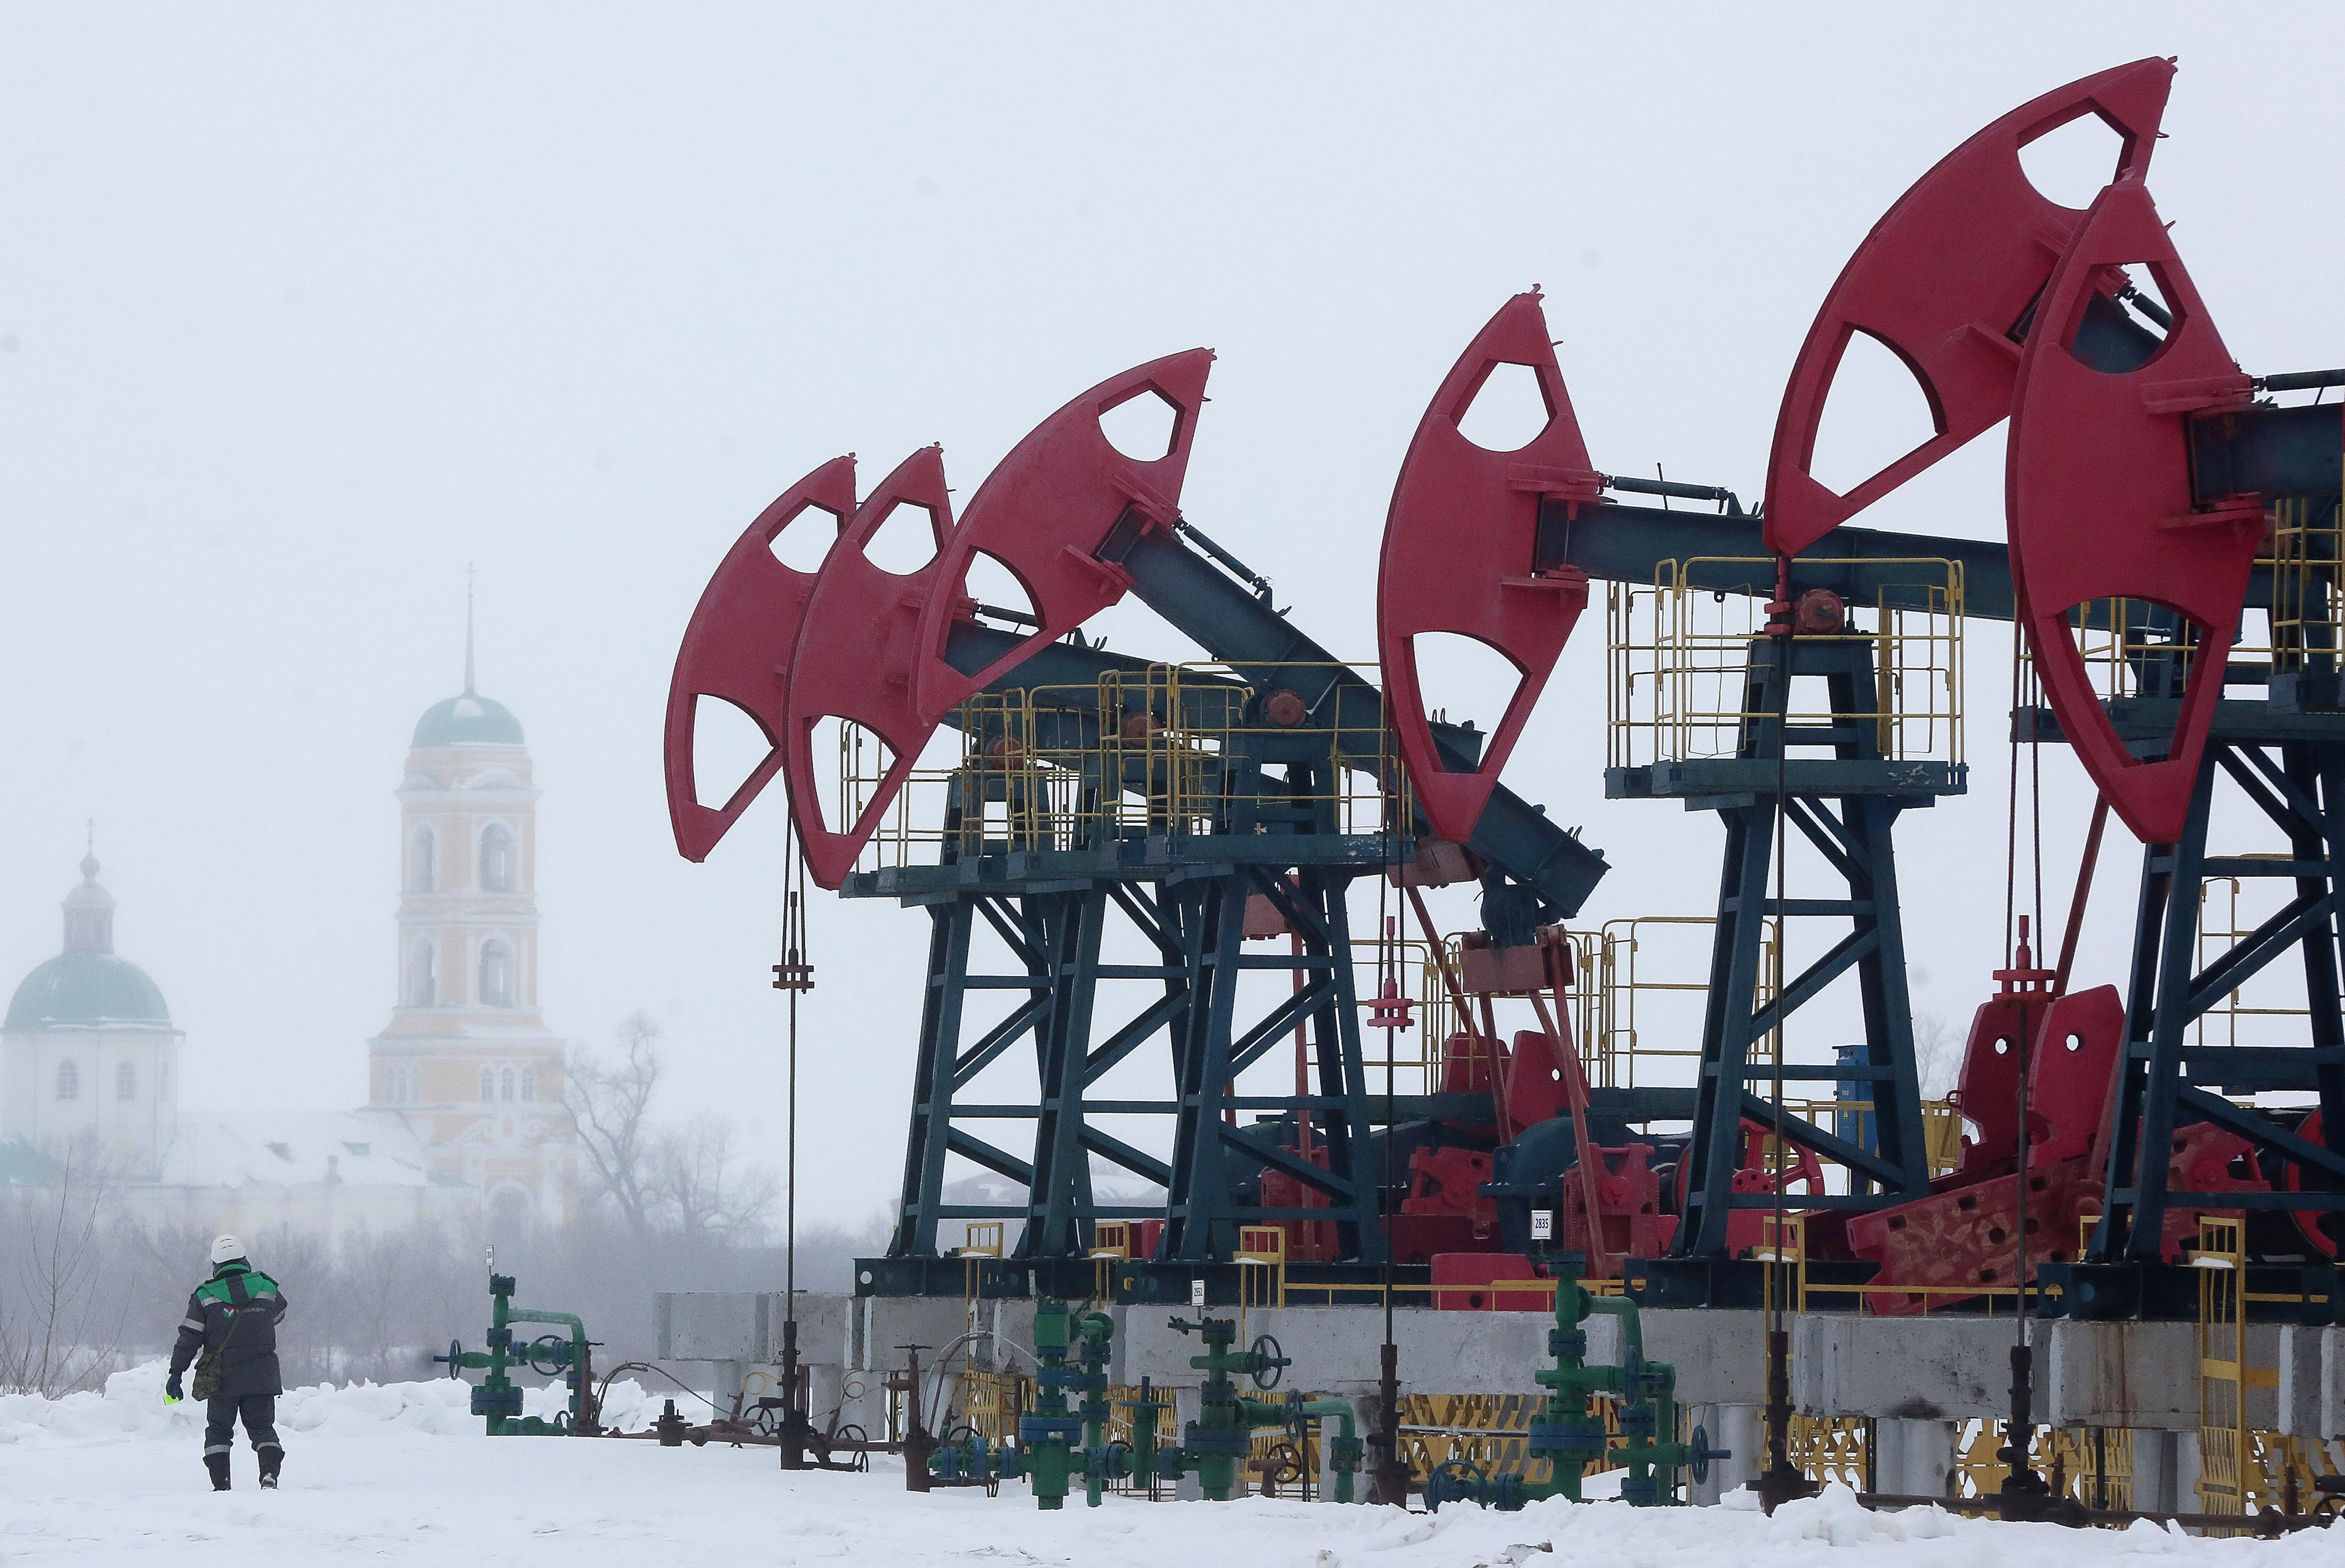 A worker passes a line of oil pumping jacks outside the village of Nikolo-Beryozovka near Neftekamsk, Russia, on March 3, 2016. MUST CREDIT: Bloomberg photo by Andrey Rudakov.